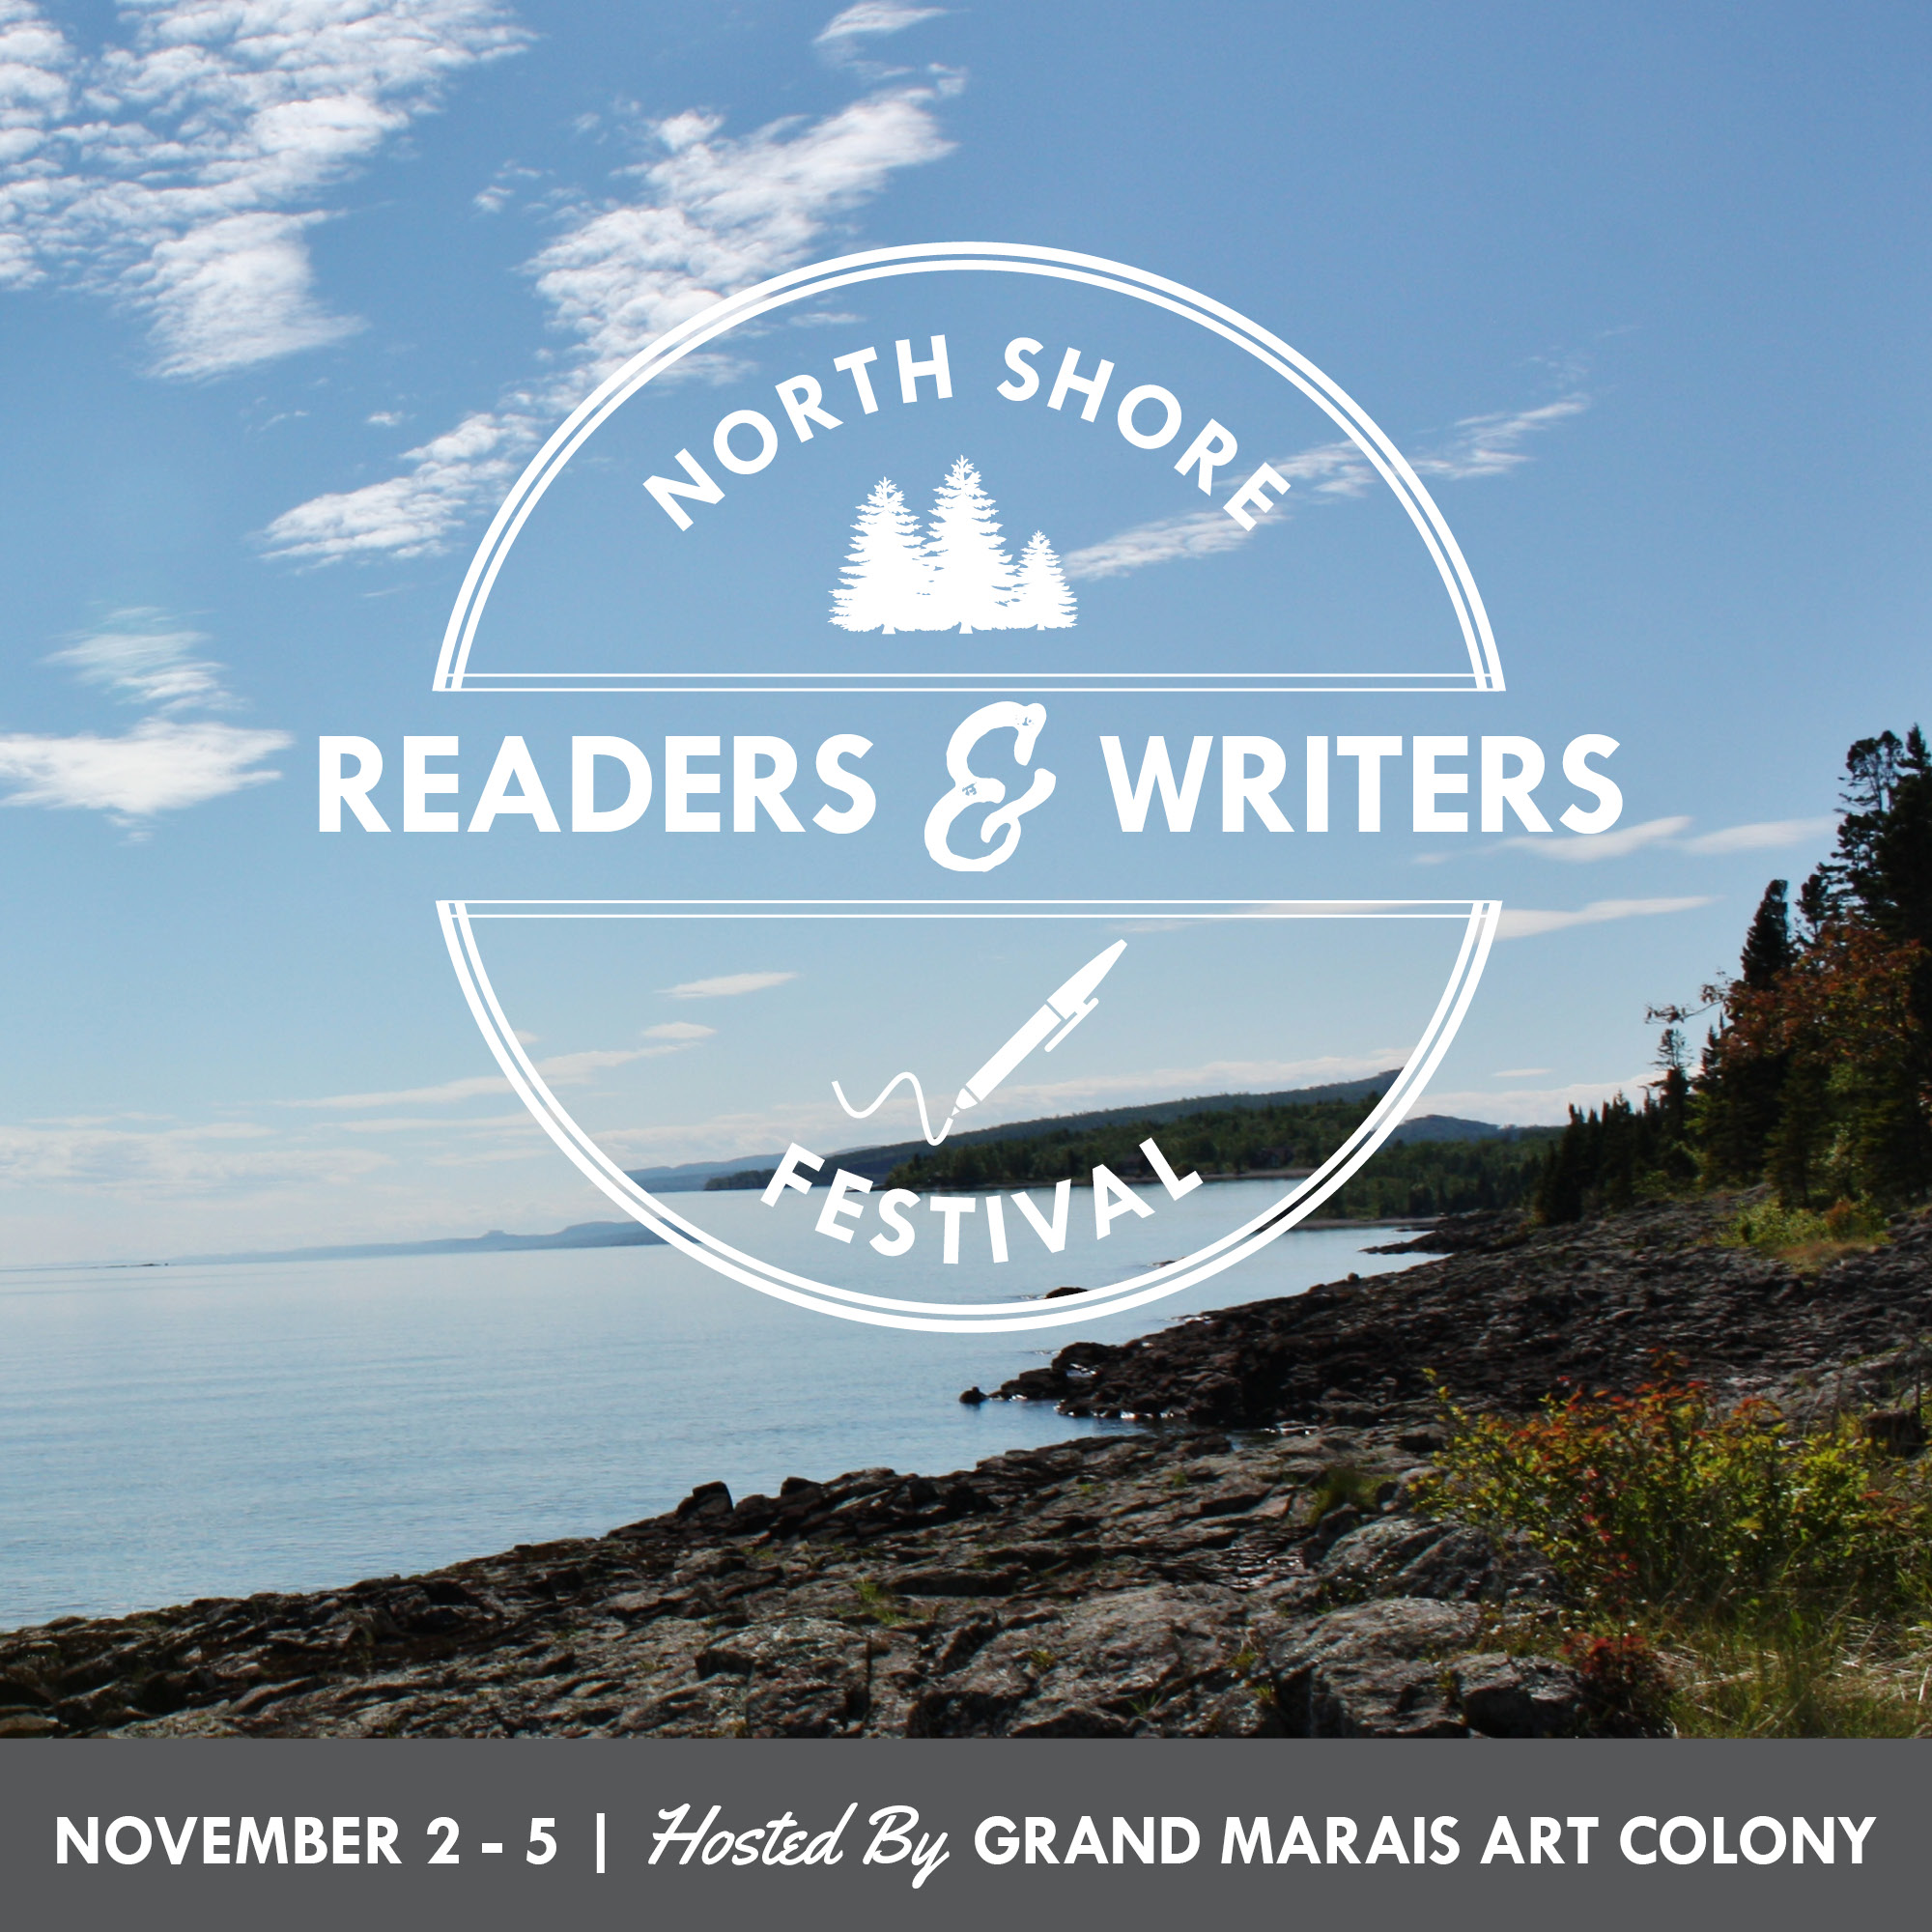 2017 20north 20shore 20readers 20and 20writers 20festival